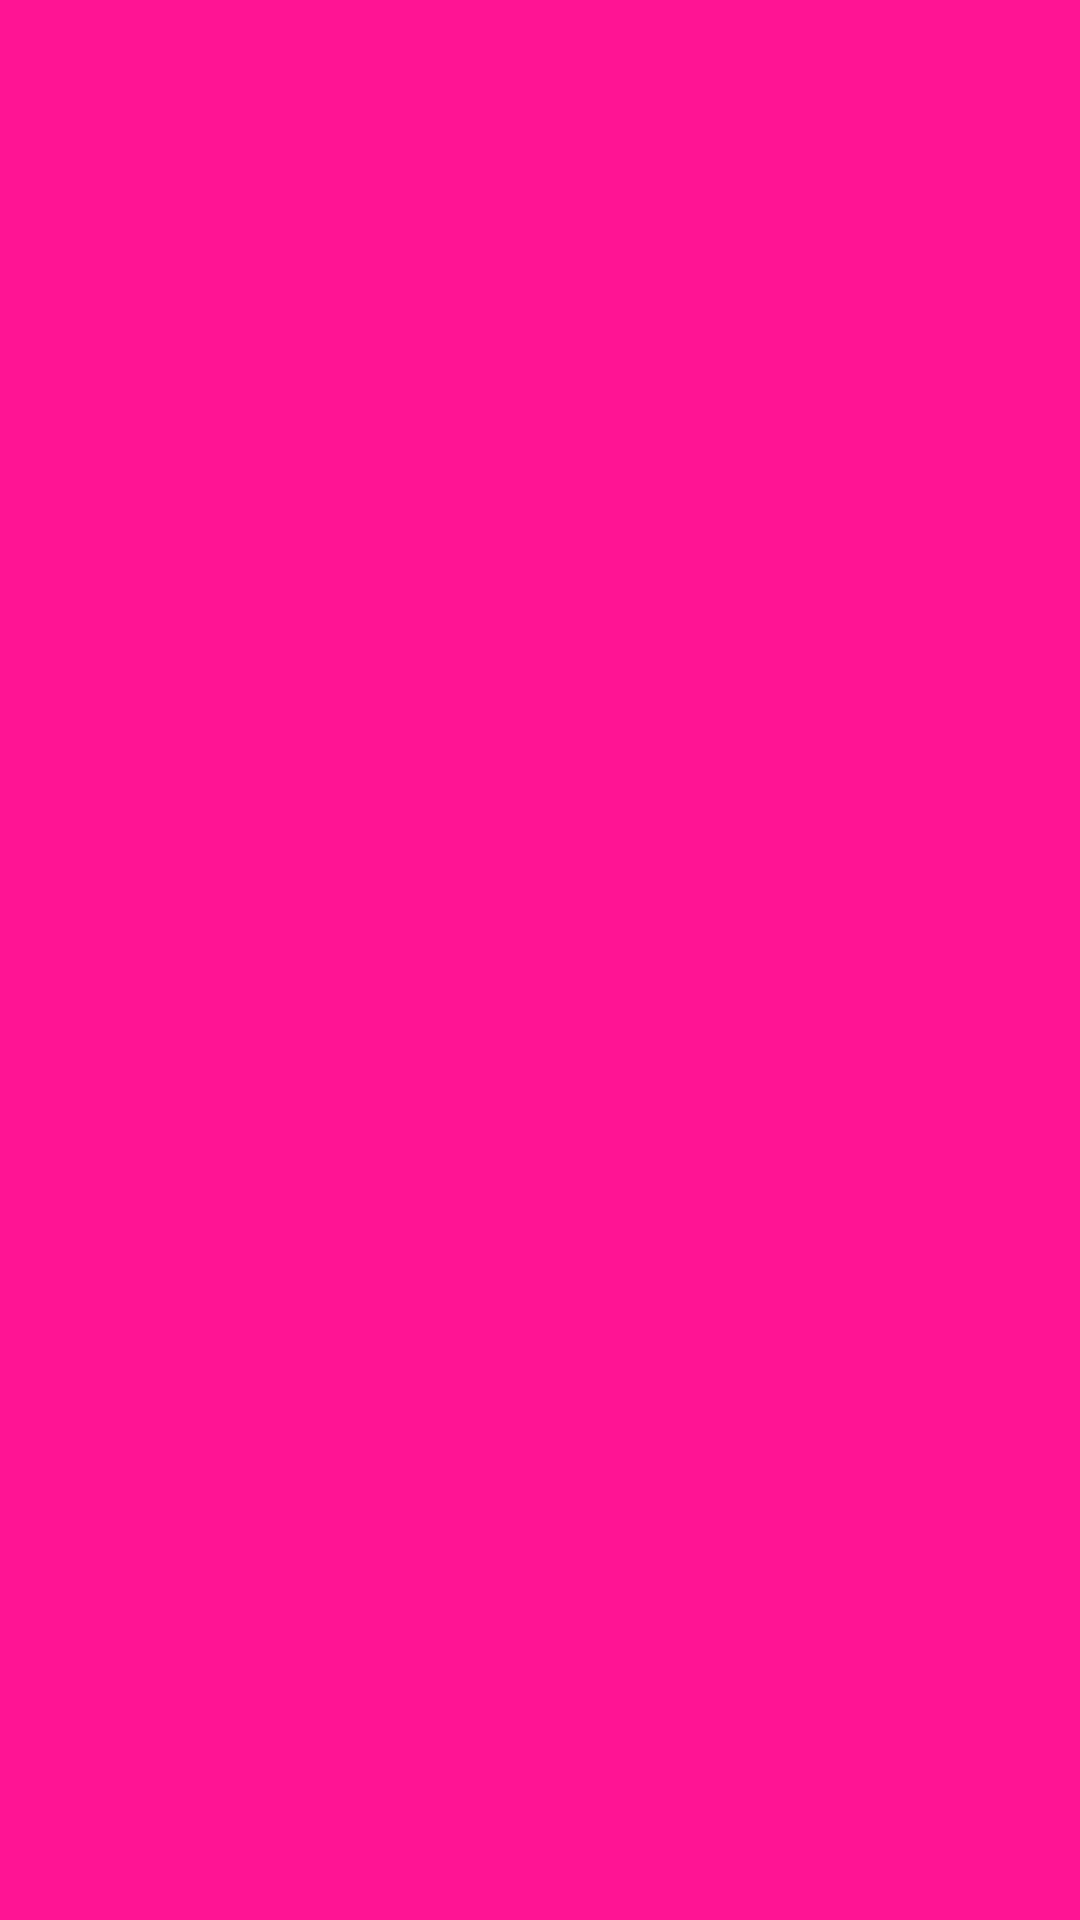 1080x1920 Deep Pink Solid Color Background